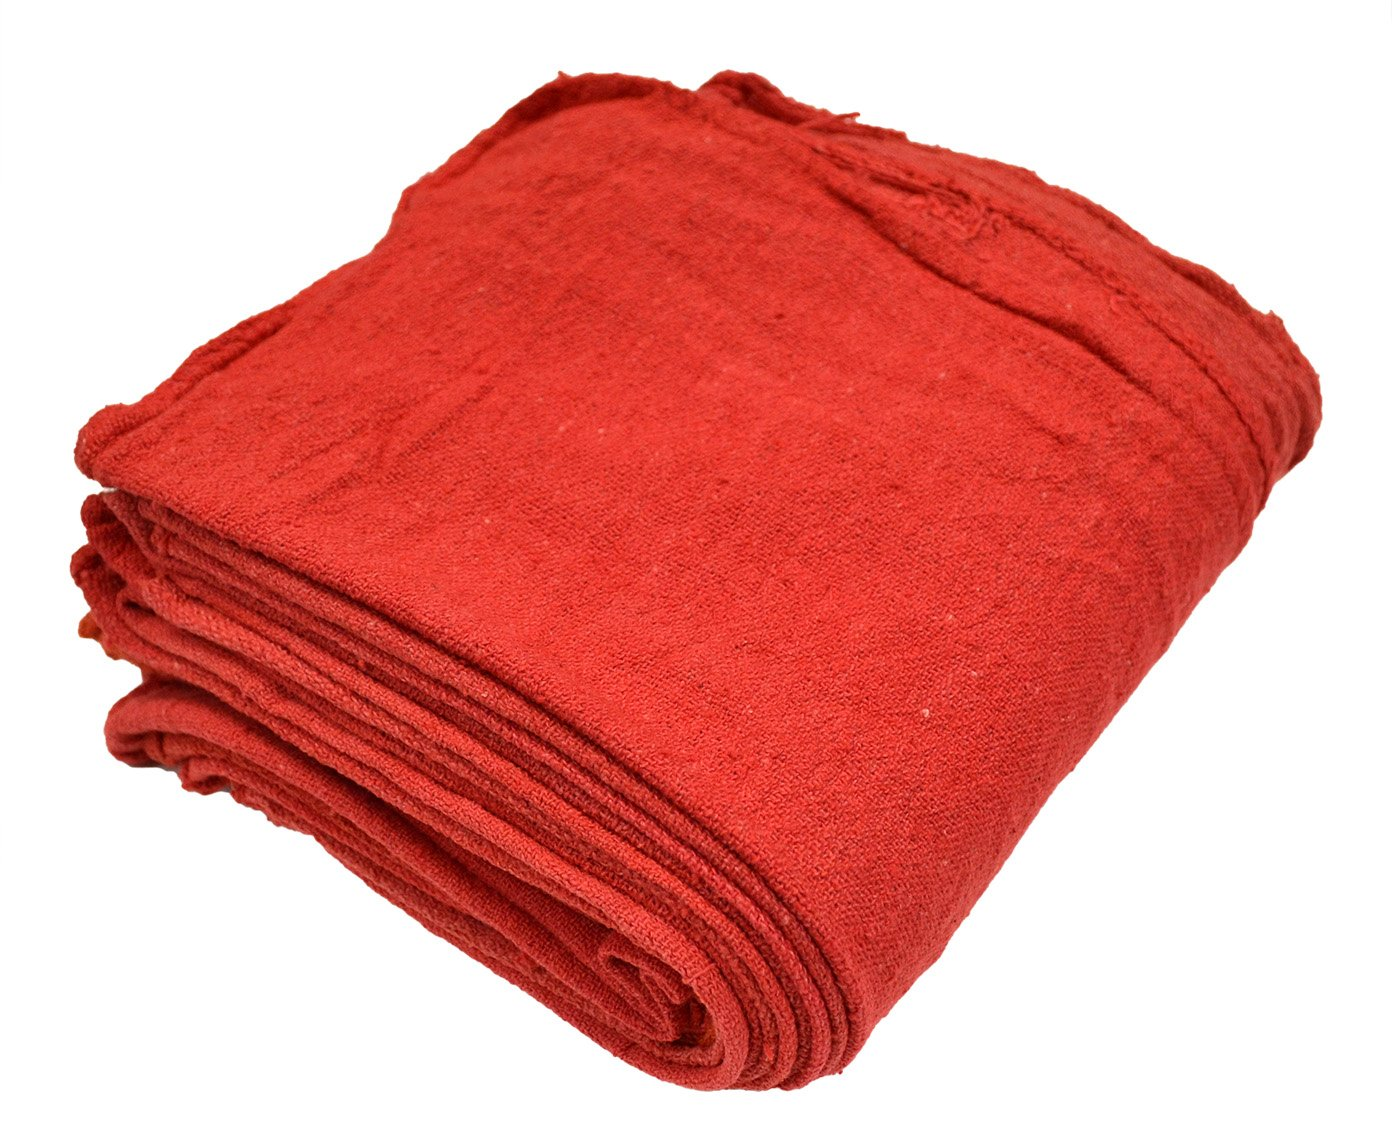 Pro-Clean Basics A21817 Reusable Shop Towels, Red, 12'' x 14'', Pack of 300